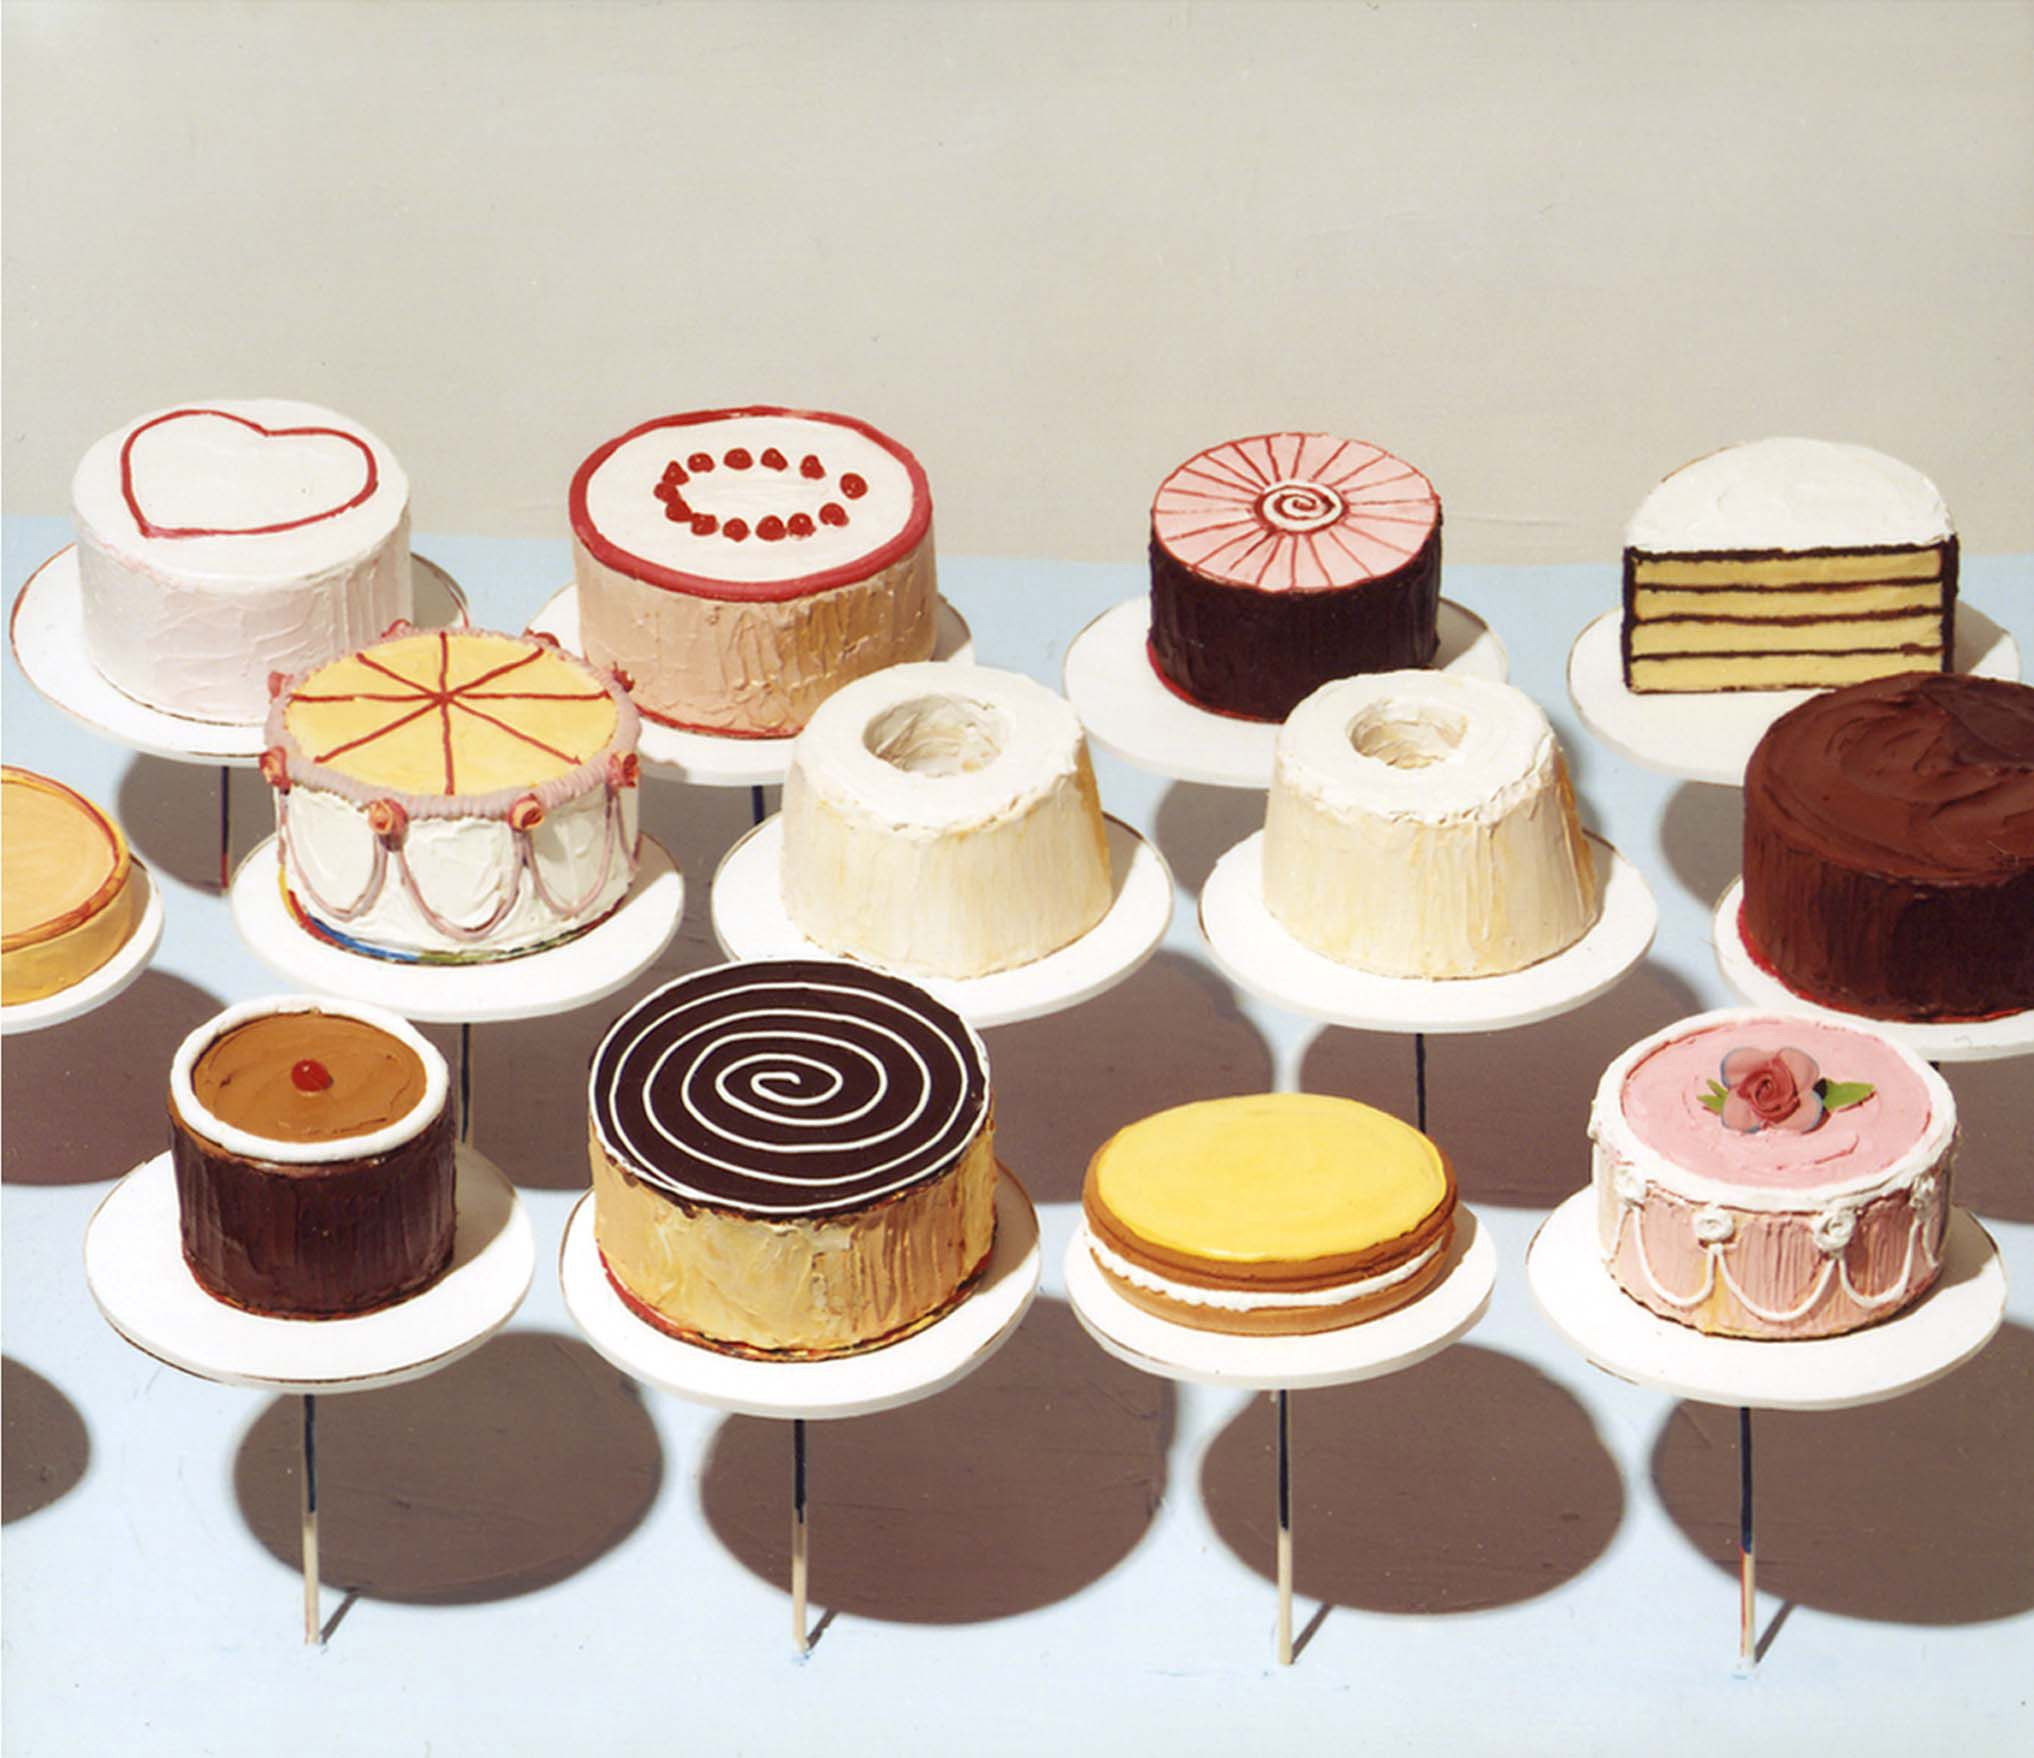 Paintings by Wayne Thiebaud | Pop art, Cakes and Middle